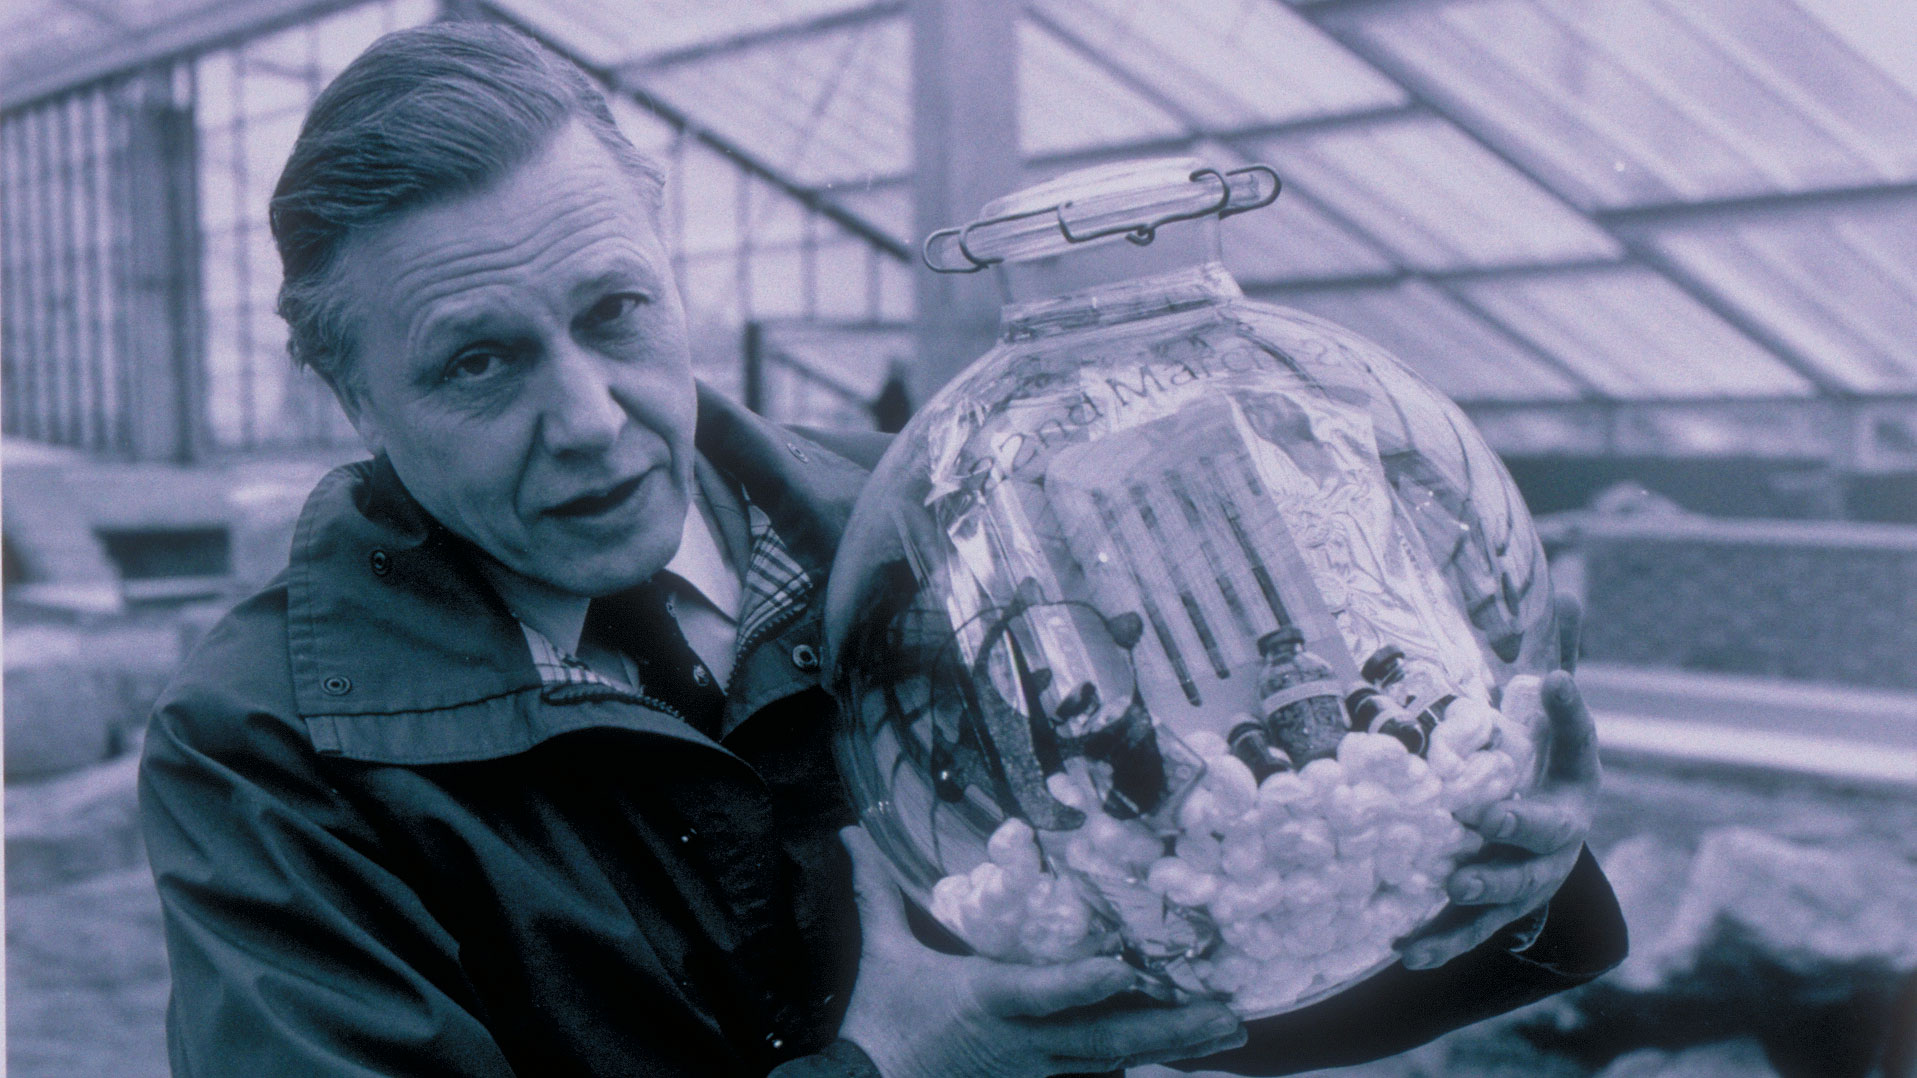 Sir David Attenborough in 1985 with the capsule now buried in the Princess of Wales Conservatory